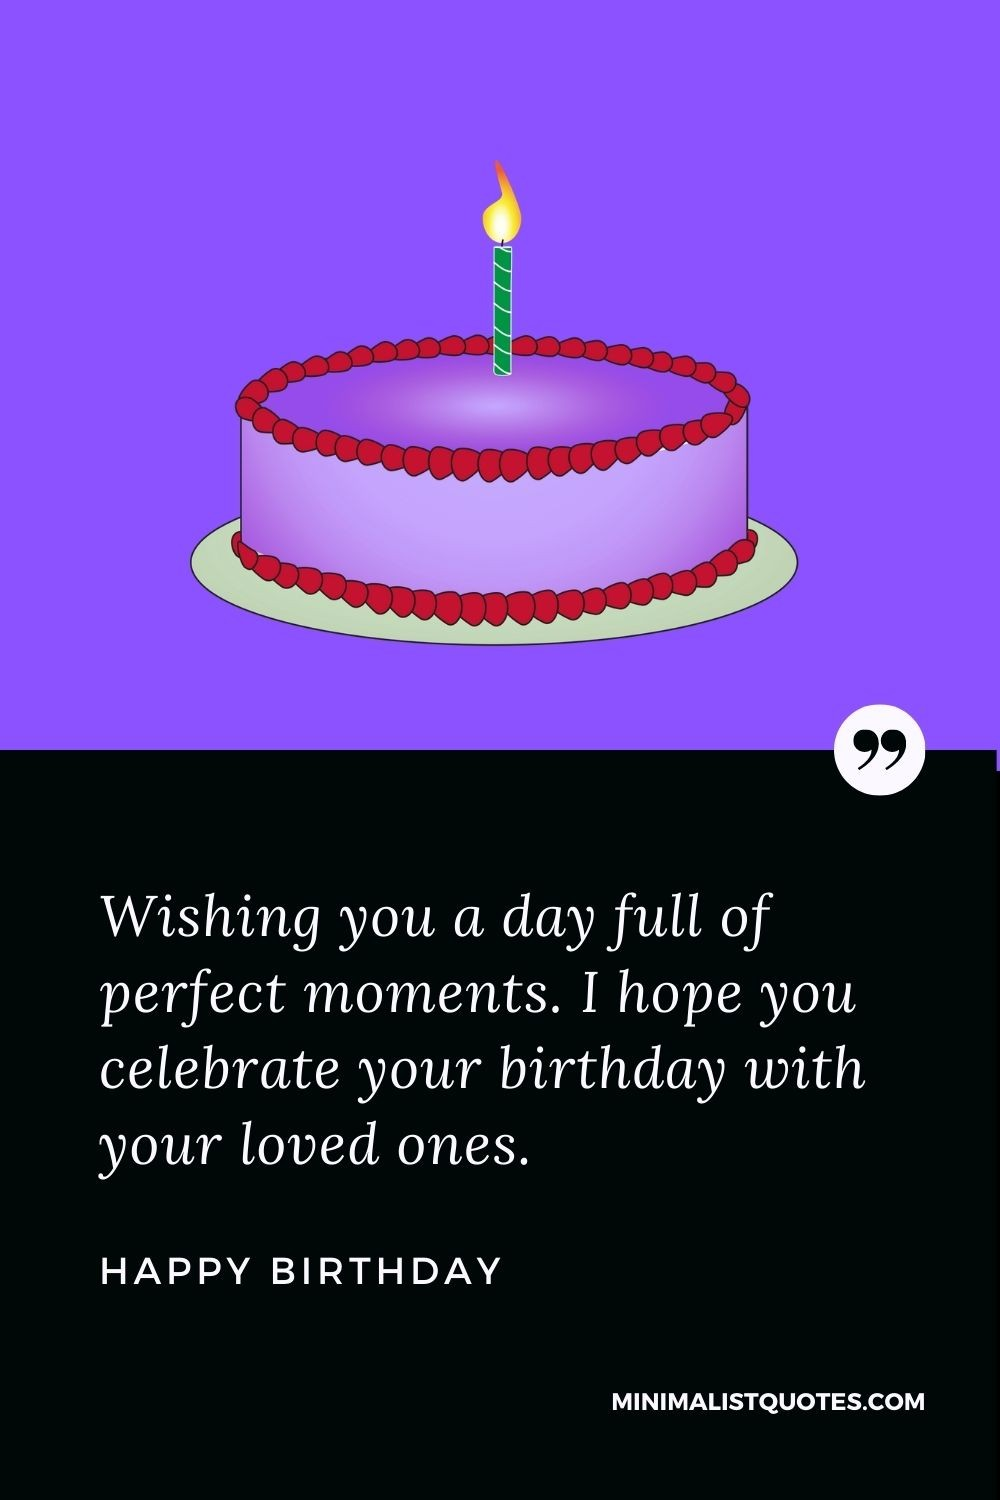 Happy Birthday Wish - Birthdays are the best time to share your life experience, cherish past memories& celebrate your achievement.